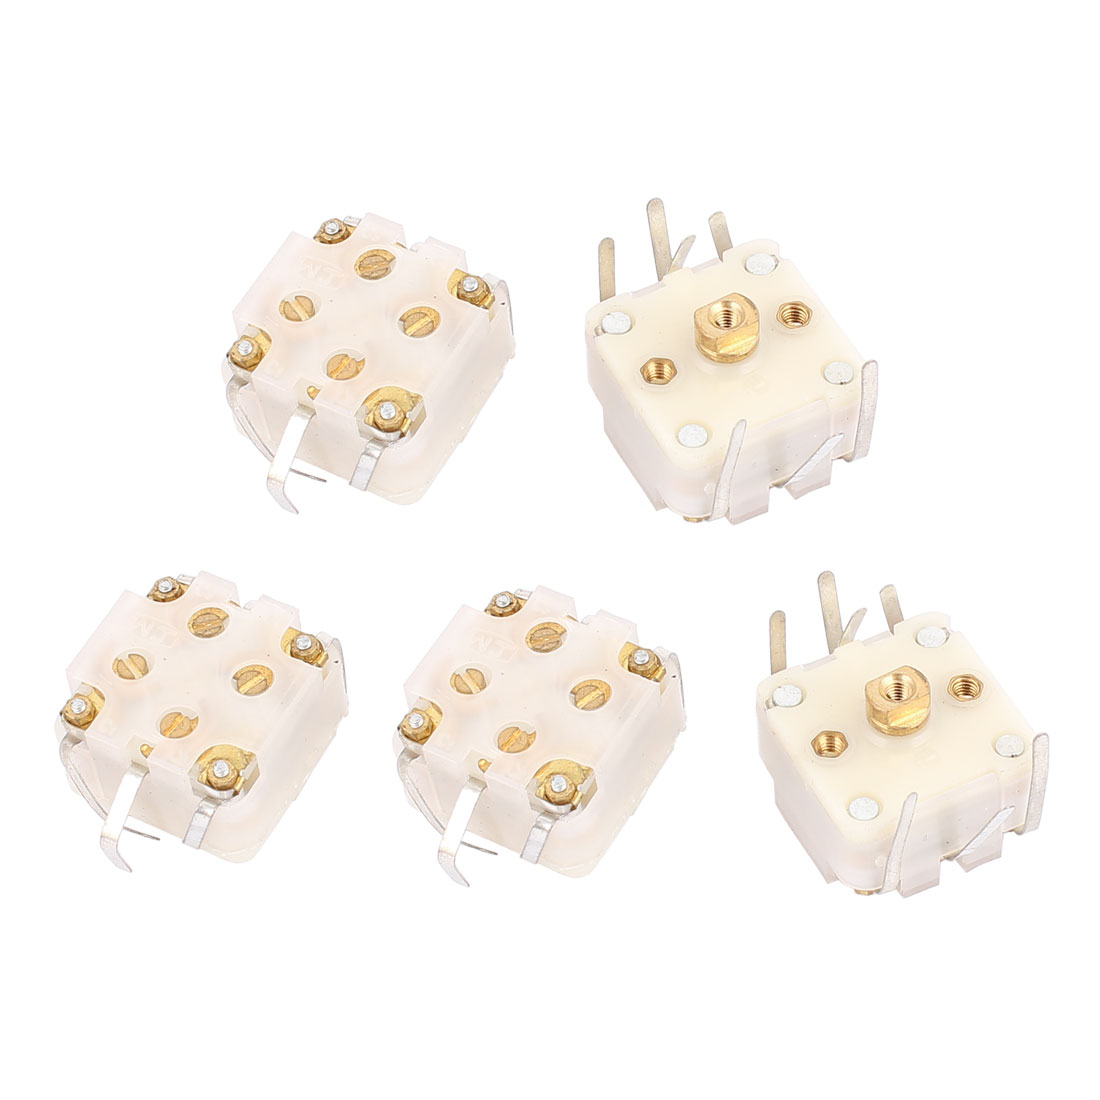 5 Pcs 443DF 20-126pF Medium Variodencer Adjustable Capacitor for Radio